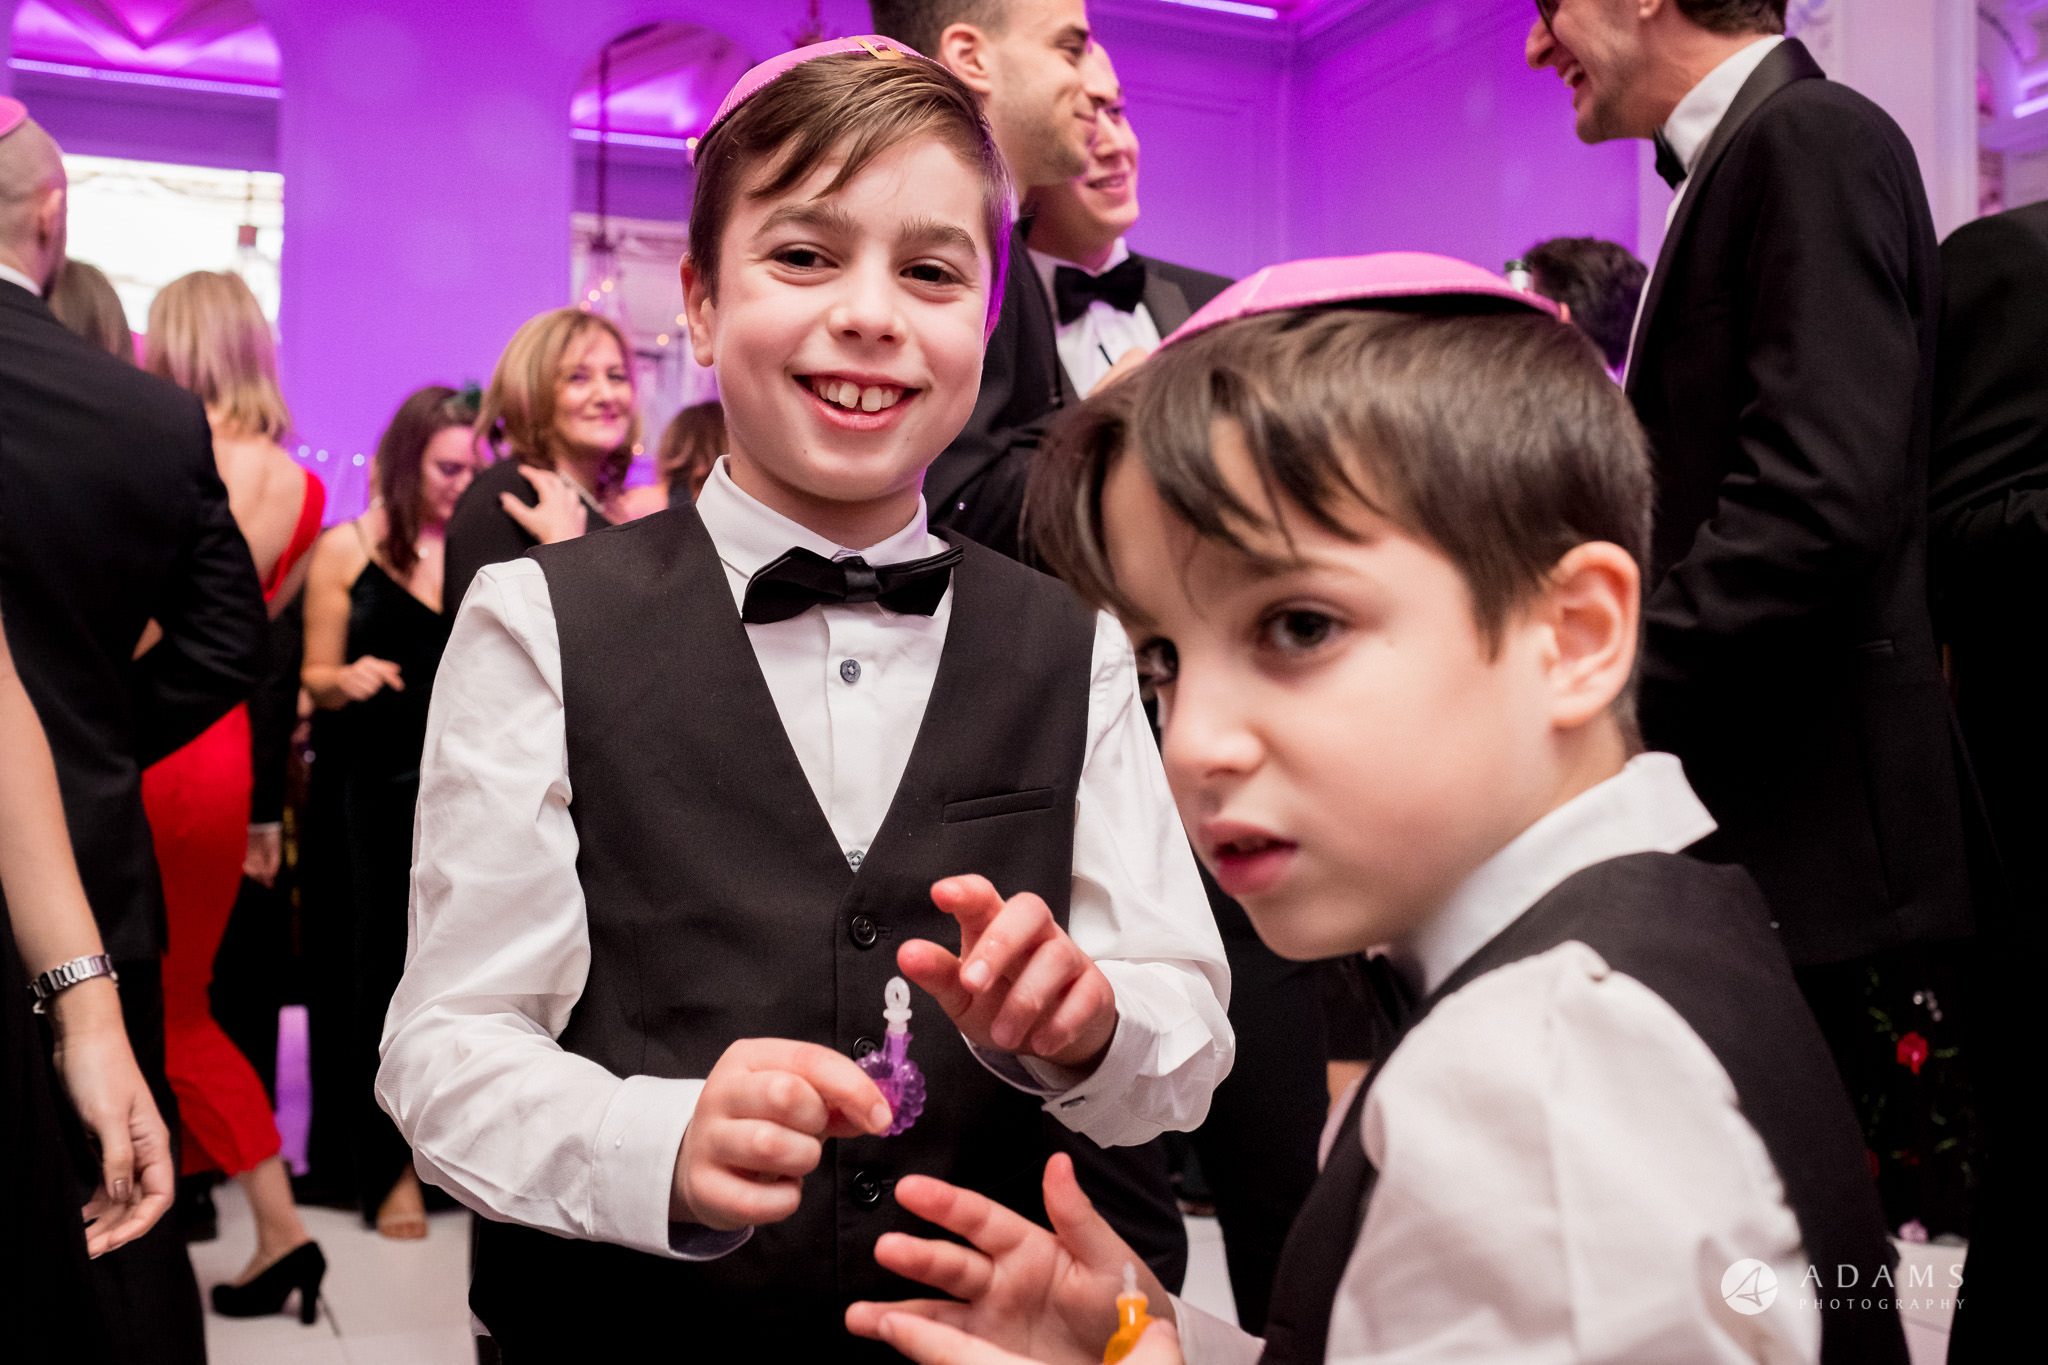 De Vere grand connaught rooms kids play with each other